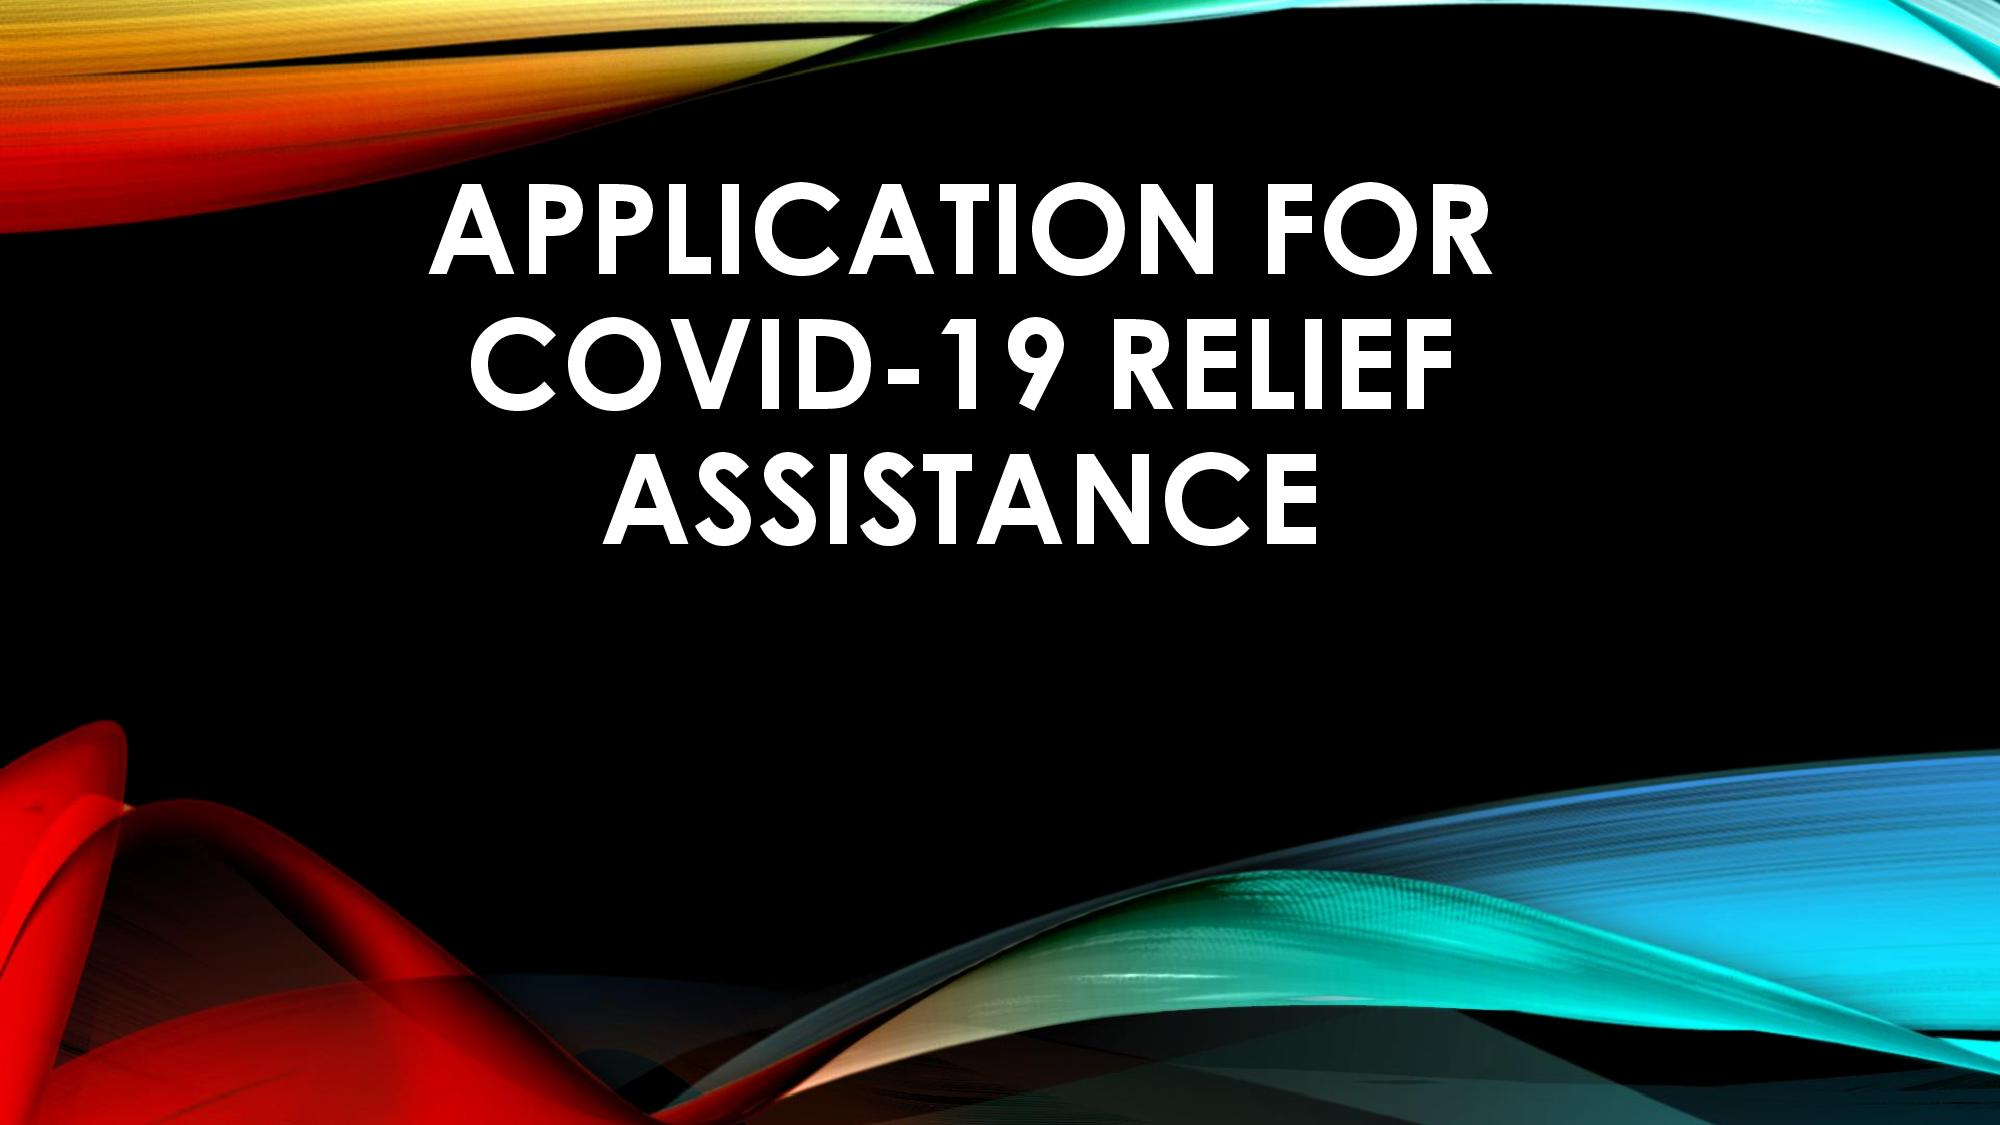 Covid-19-Application-Form-New-02-page-001